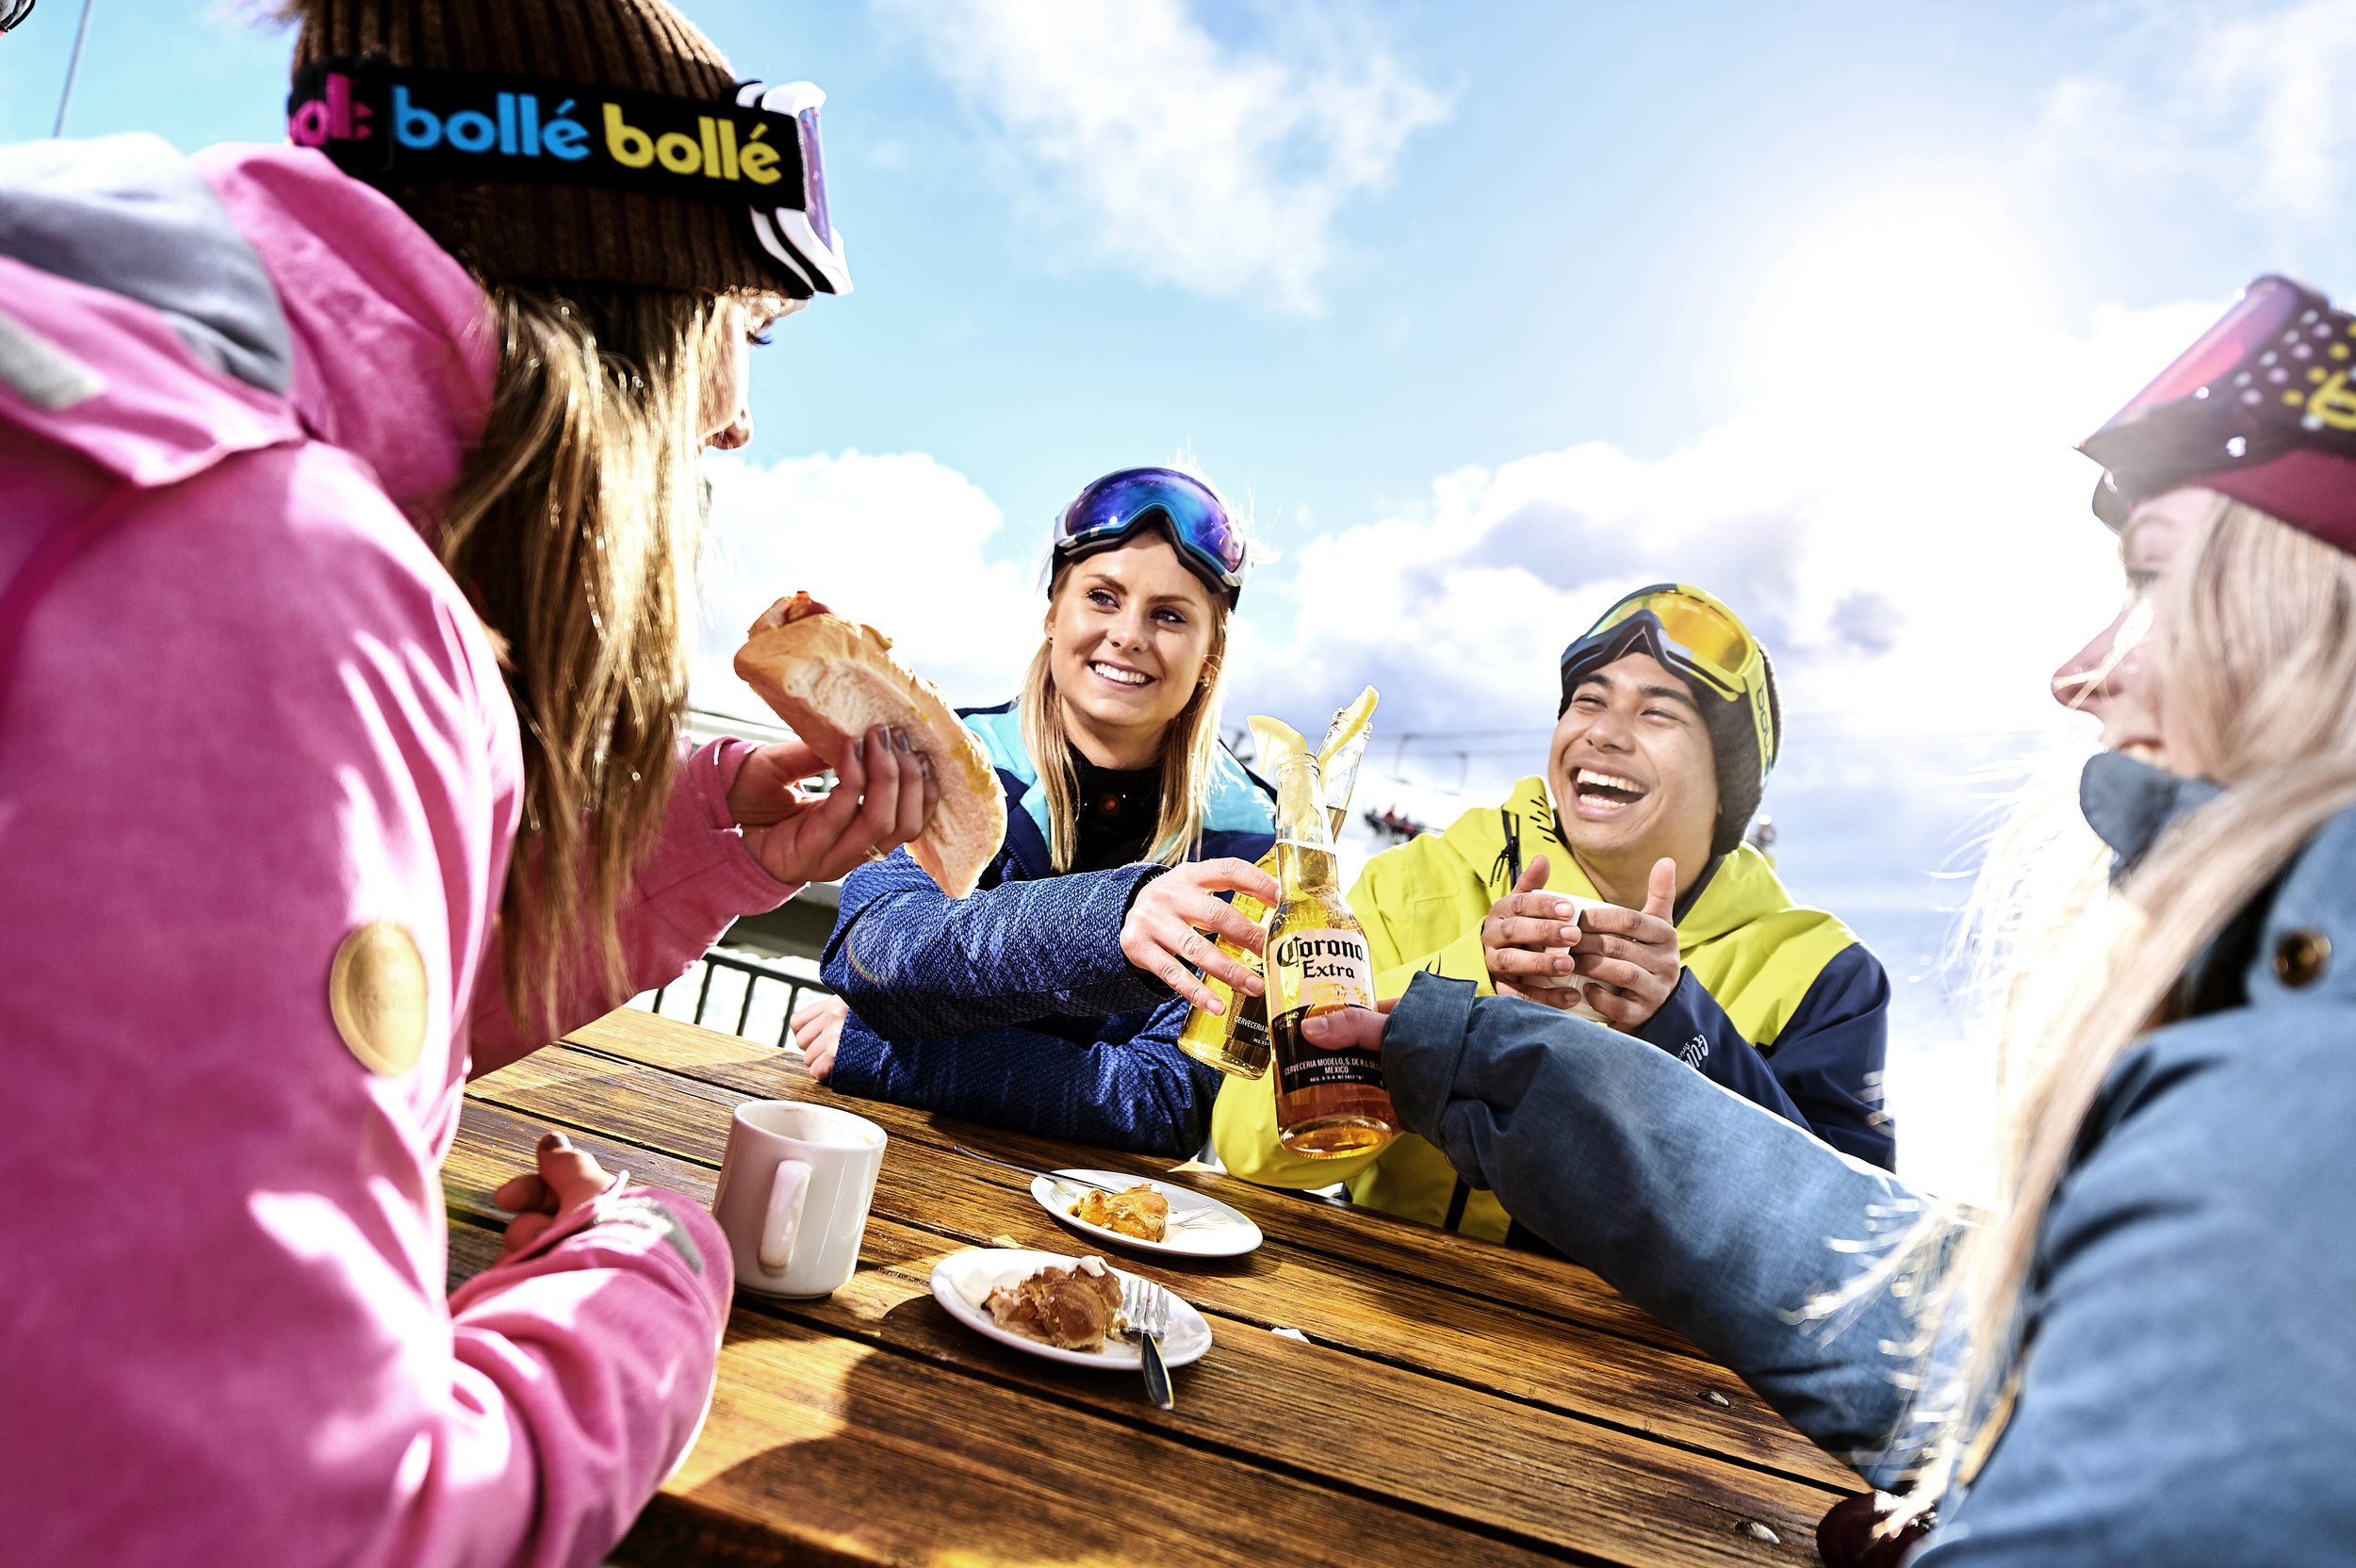 Enjoying a well earned ski break on the deck at Koflers Restaurant Mt Buller.